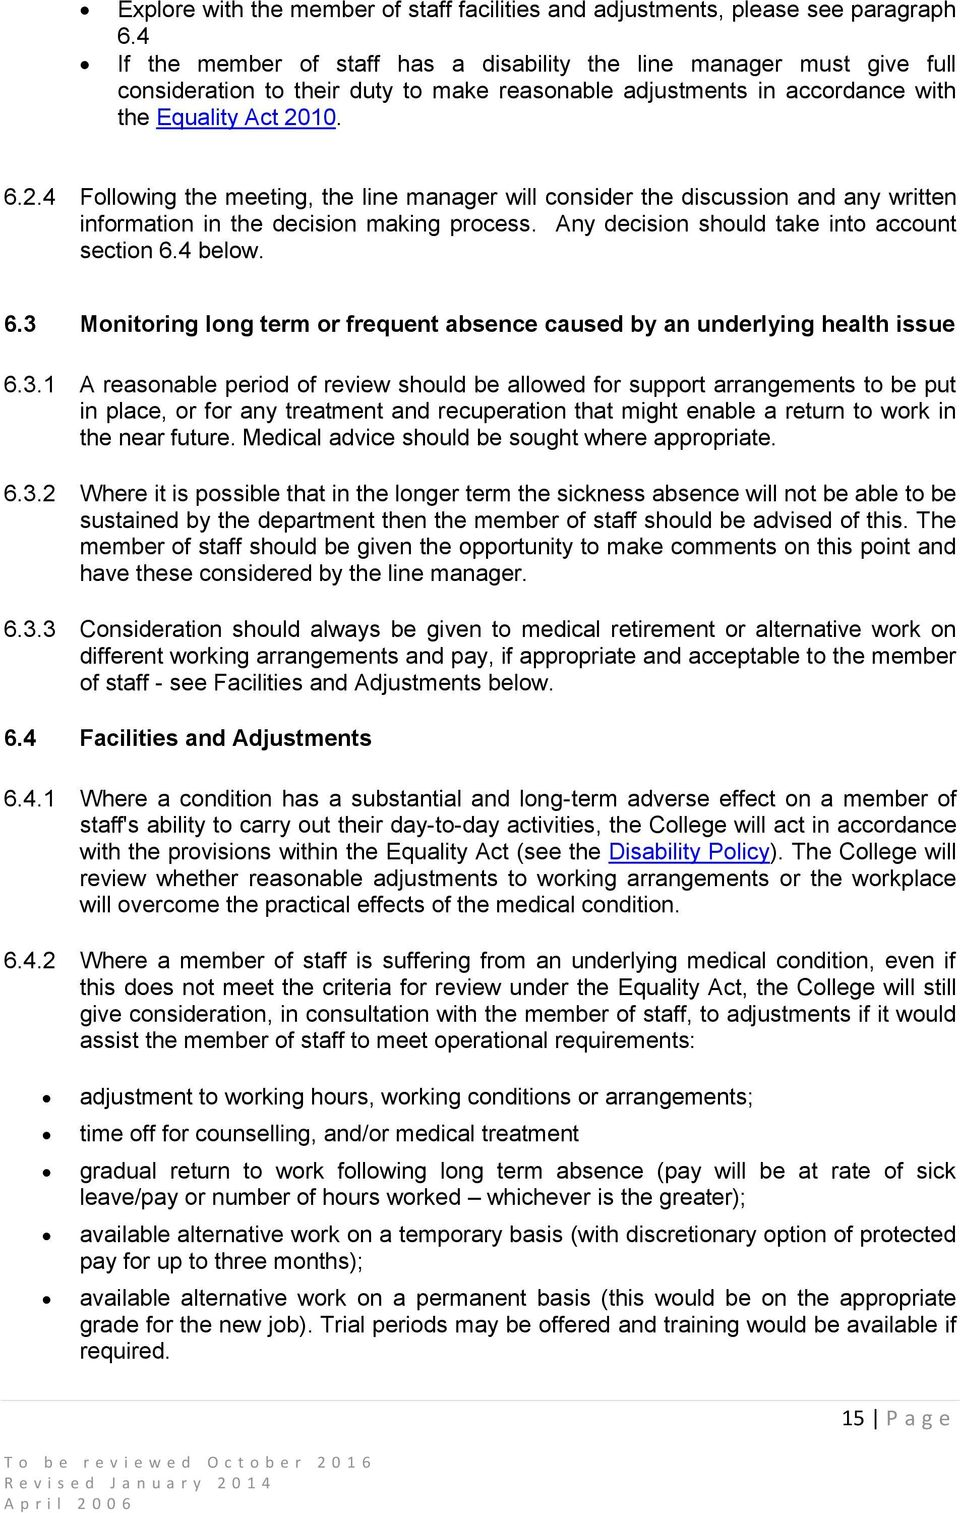 10. 6.2.4 Following the meeting, the line manager will consider the discussion and any written information in the decision making process. Any decision should take into account section 6.4 below. 6.3 Monitoring long term or frequent absence caused by an underlying health issue 6.